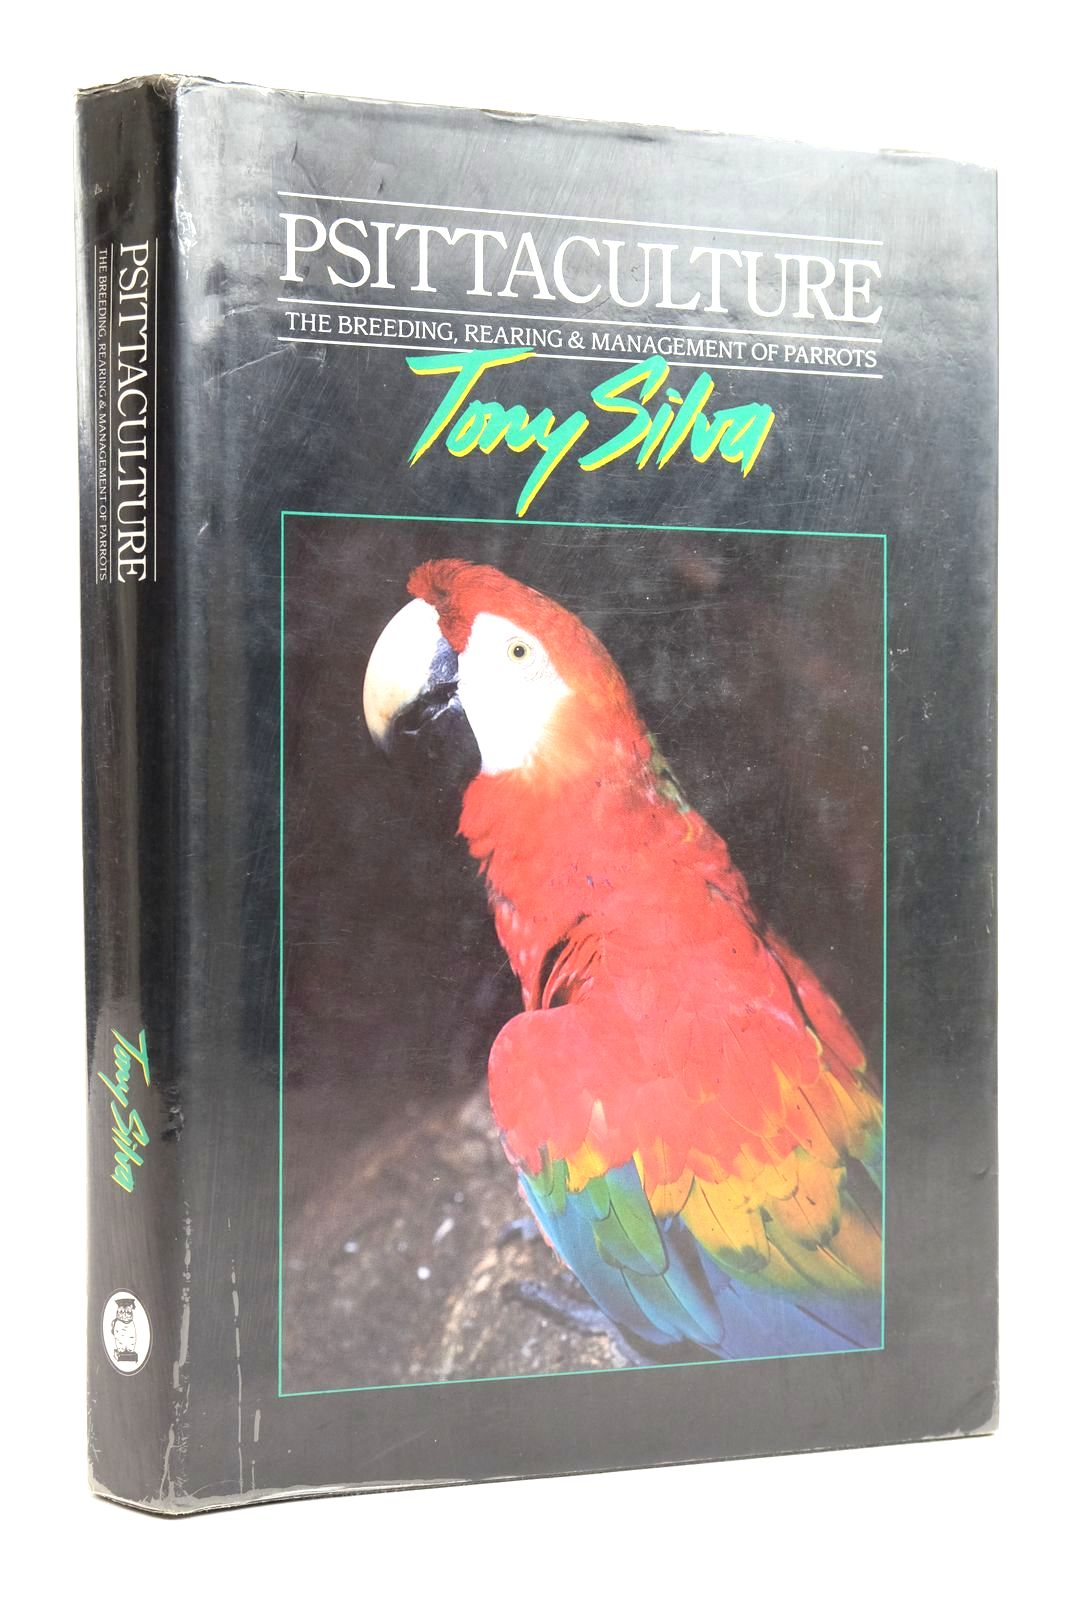 Photo of PSITTACULTURE: BREEDING, REARING AND MANAGEMENT OF PARROTS written by Silva, Tony published by Birdworld, Silvio Mattacchione & Co (STOCK CODE: 2135407)  for sale by Stella & Rose's Books